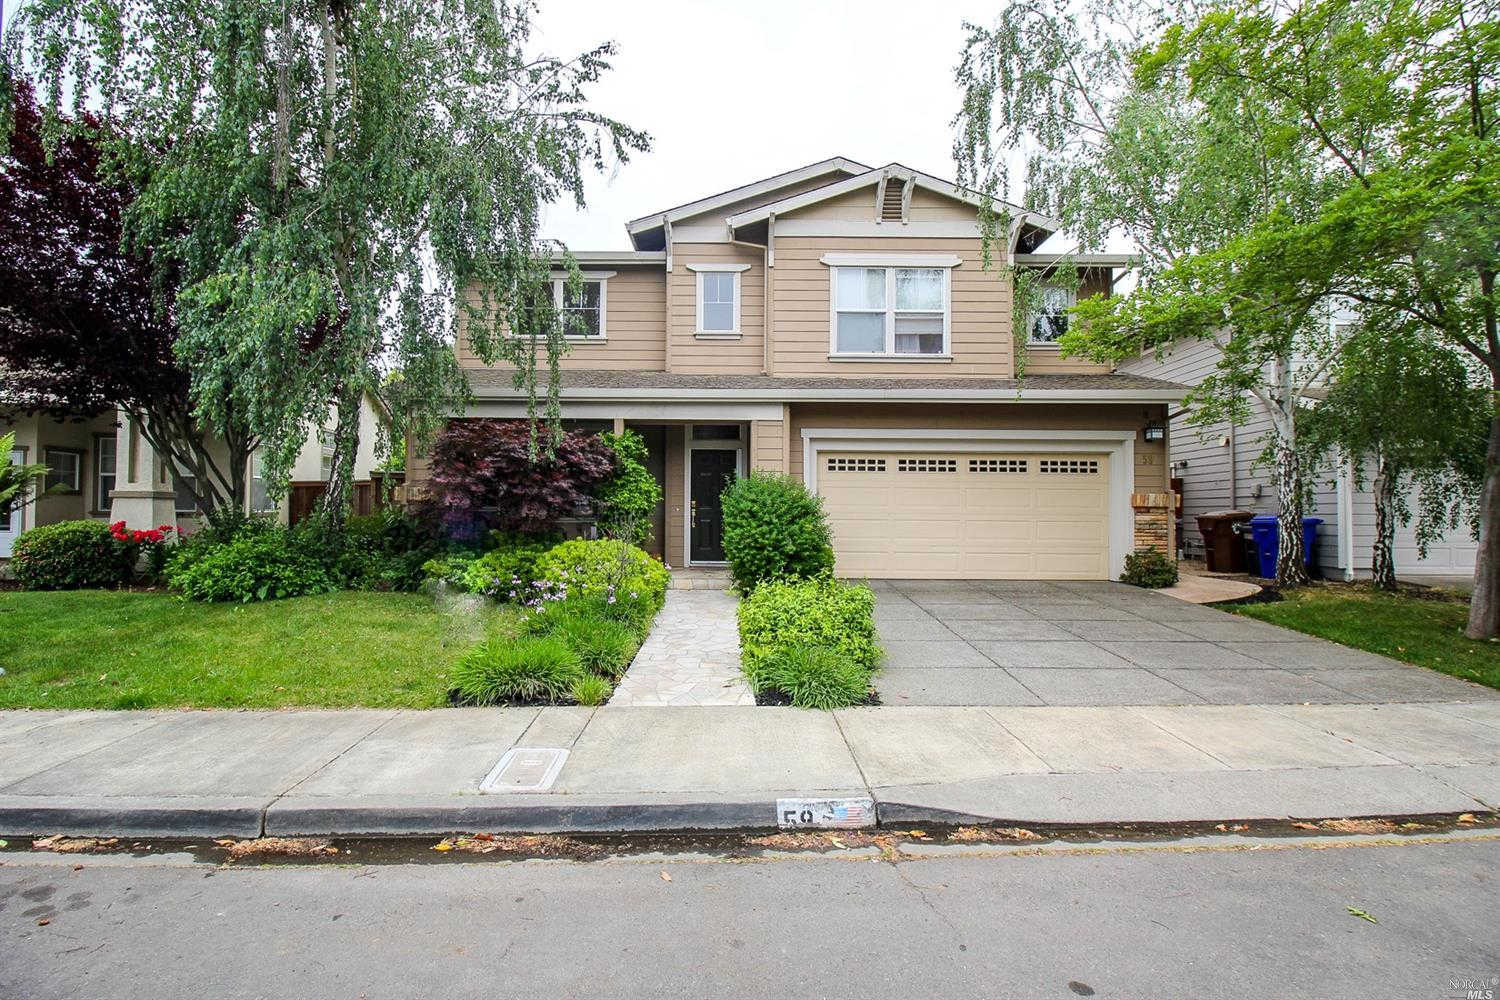 59 Summerbrooke Circle, Napa, CA 94558 has an Open House on  Sunday, May 19, 2019 11:00 AM to 1:30 PM